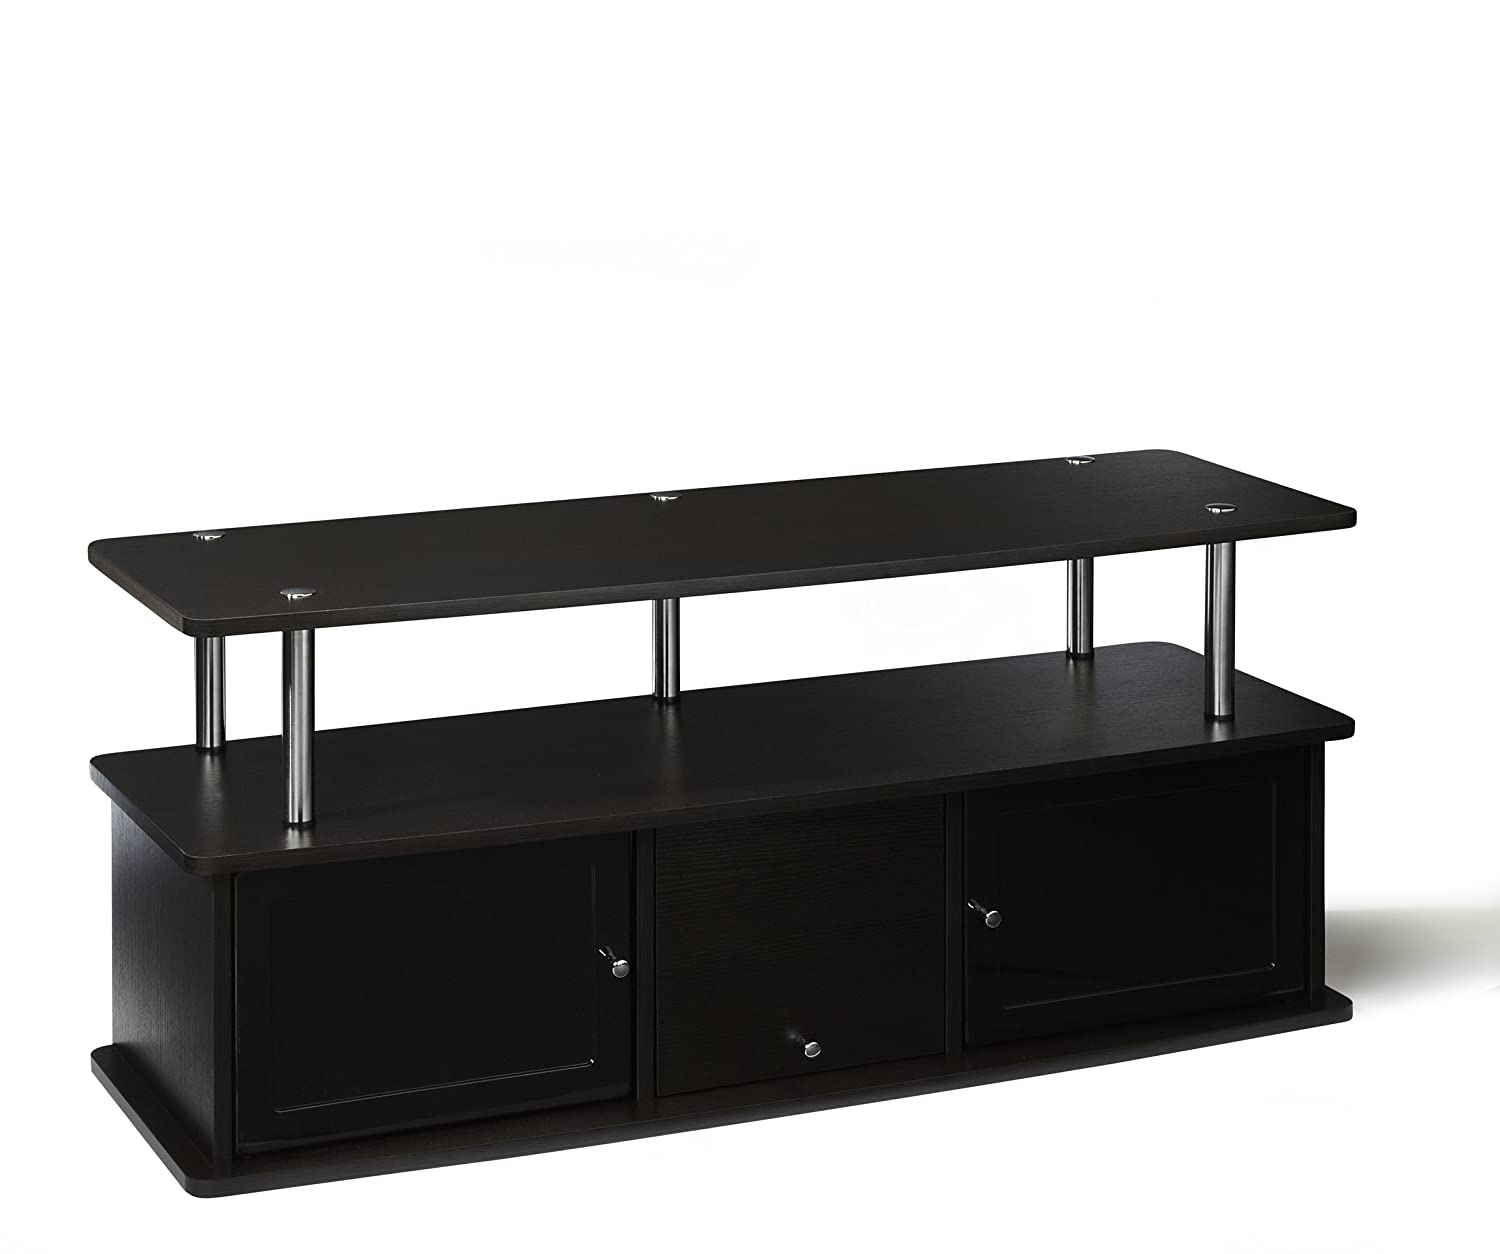 Ordinaire Amazon.com: Convenience Concepts Designs2Go TV Stand With 3 Cabinets For  Flat Panel TVu0027s Up To 50 Inch Or 85 Pounds, Dark Espresso: Kitchen U0026 Dining